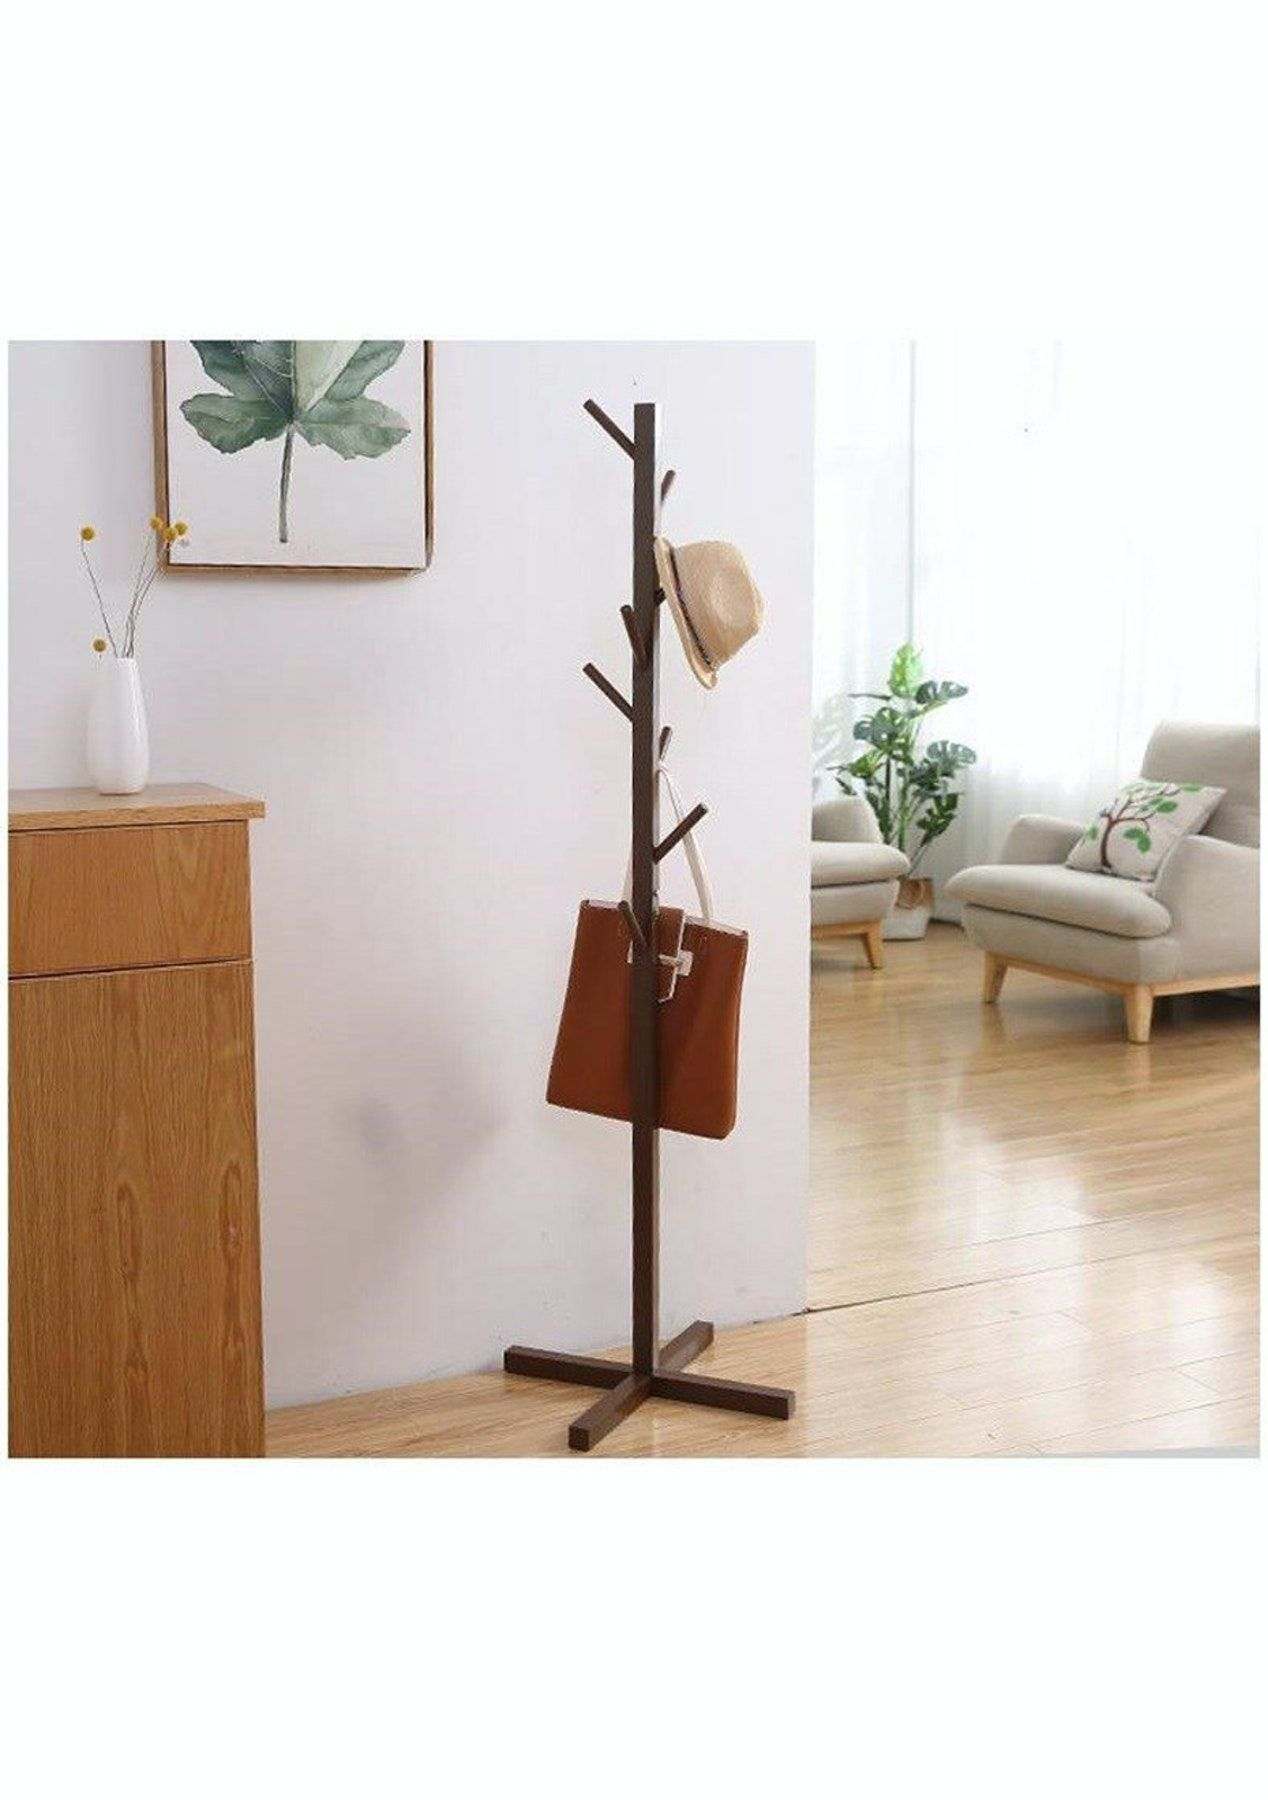 Modern Wooden Cross Base Stand Coat Hat Rack Chocolate In 2021 Coat Stands Vintage Shelving Frames On Wall